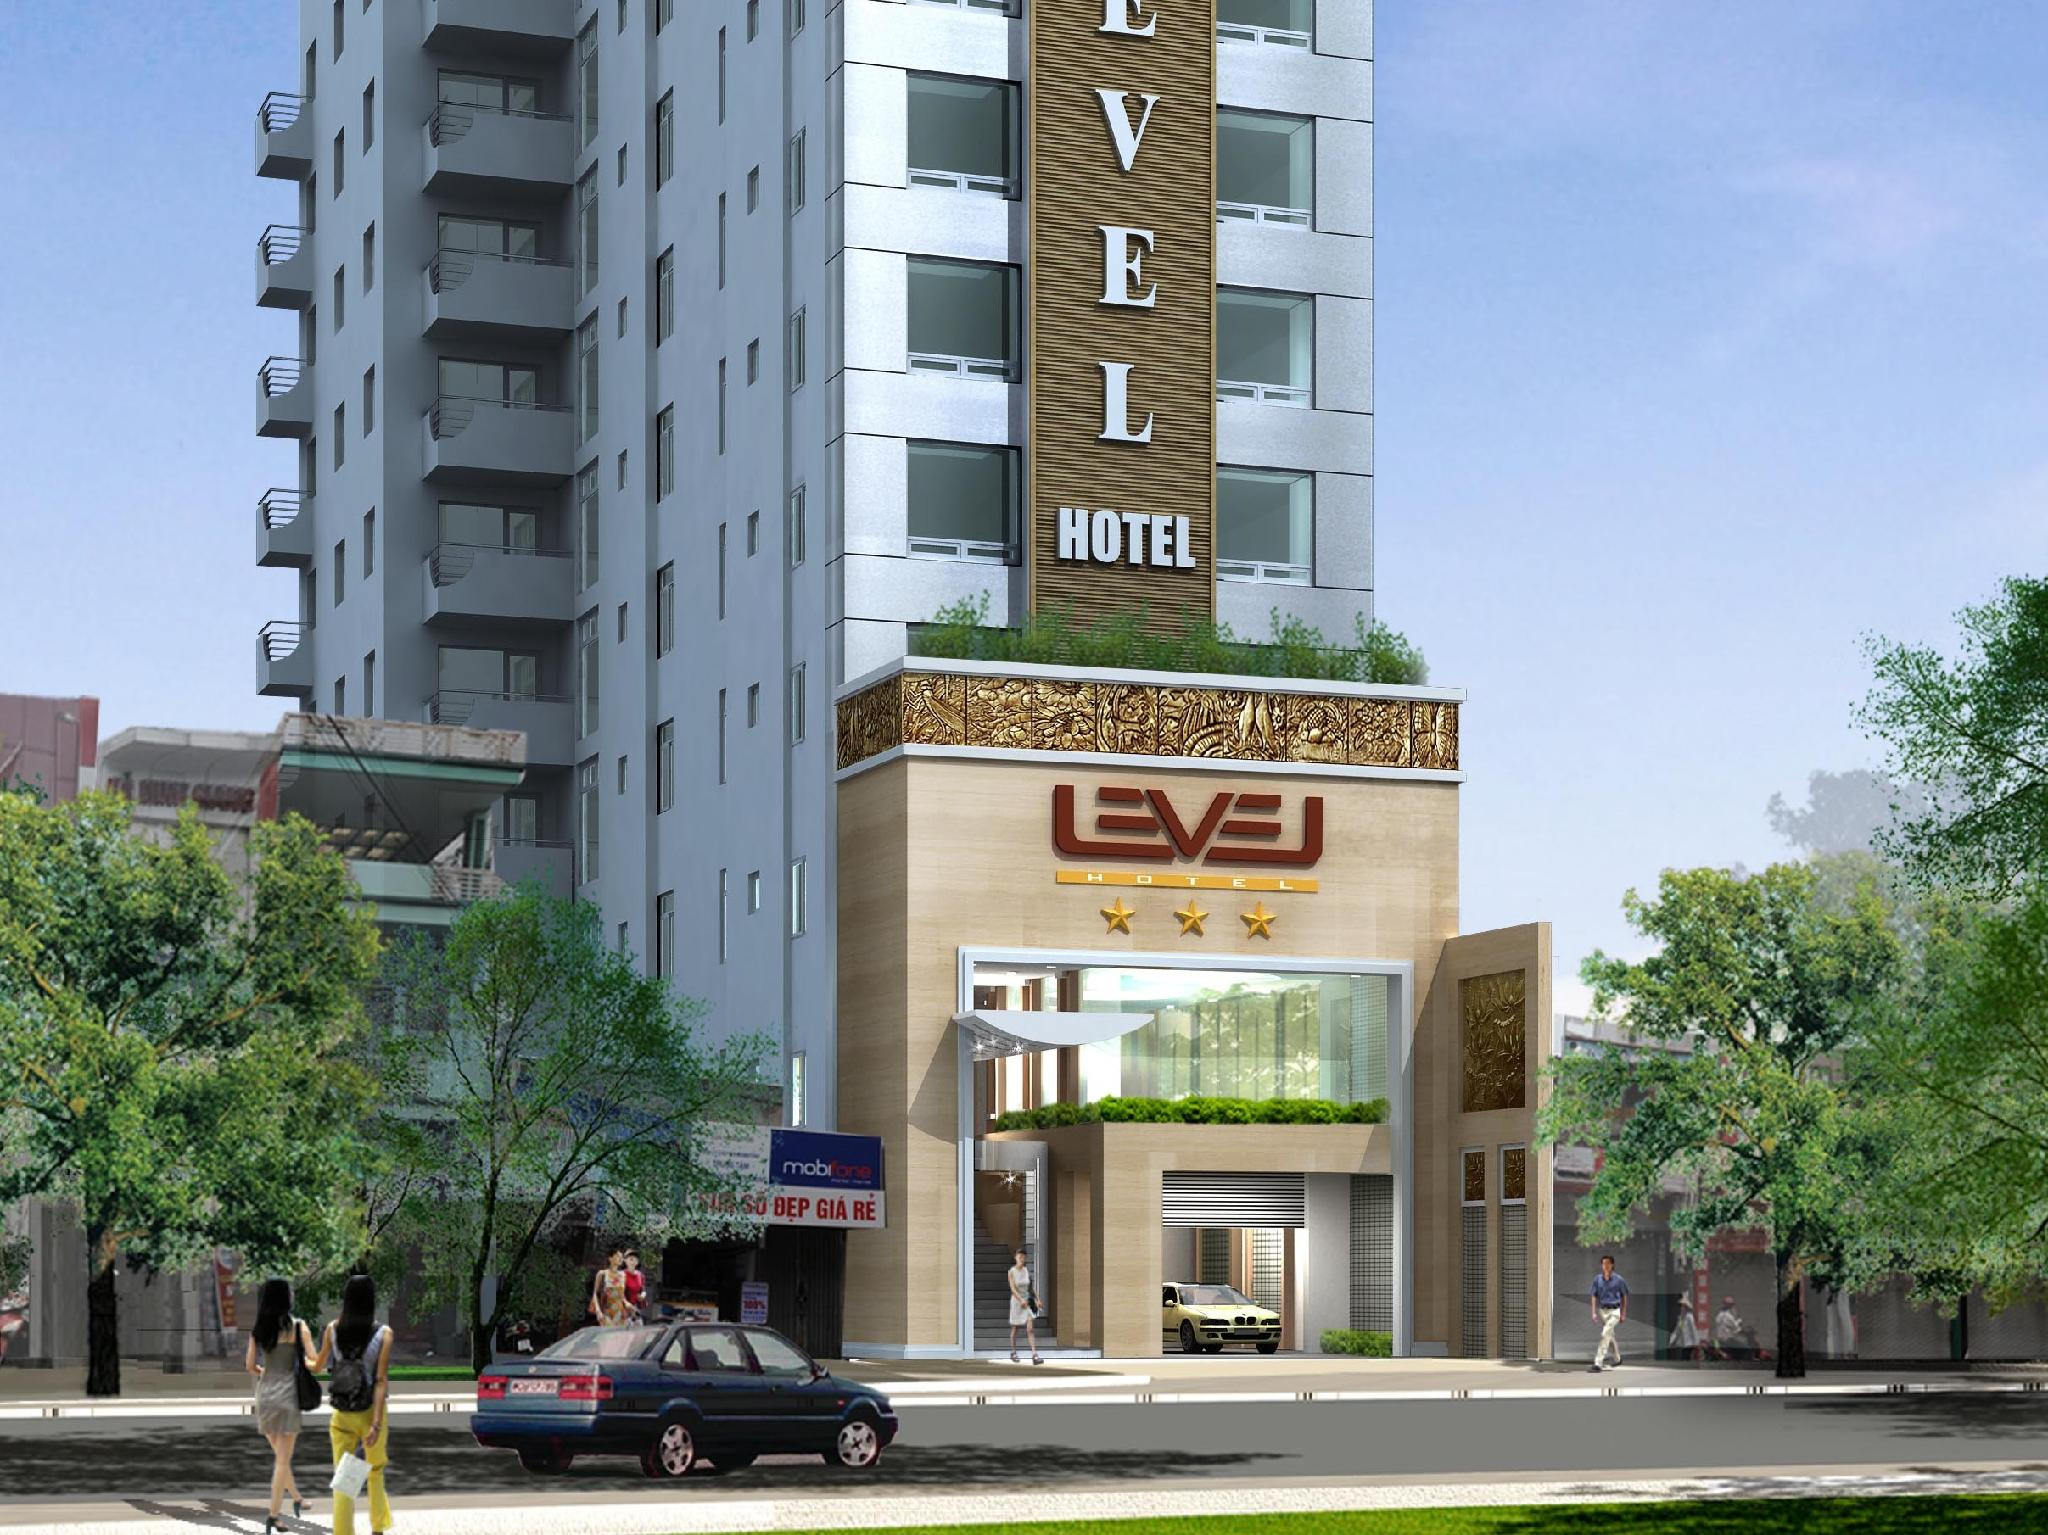 Level Haiphong Hotel